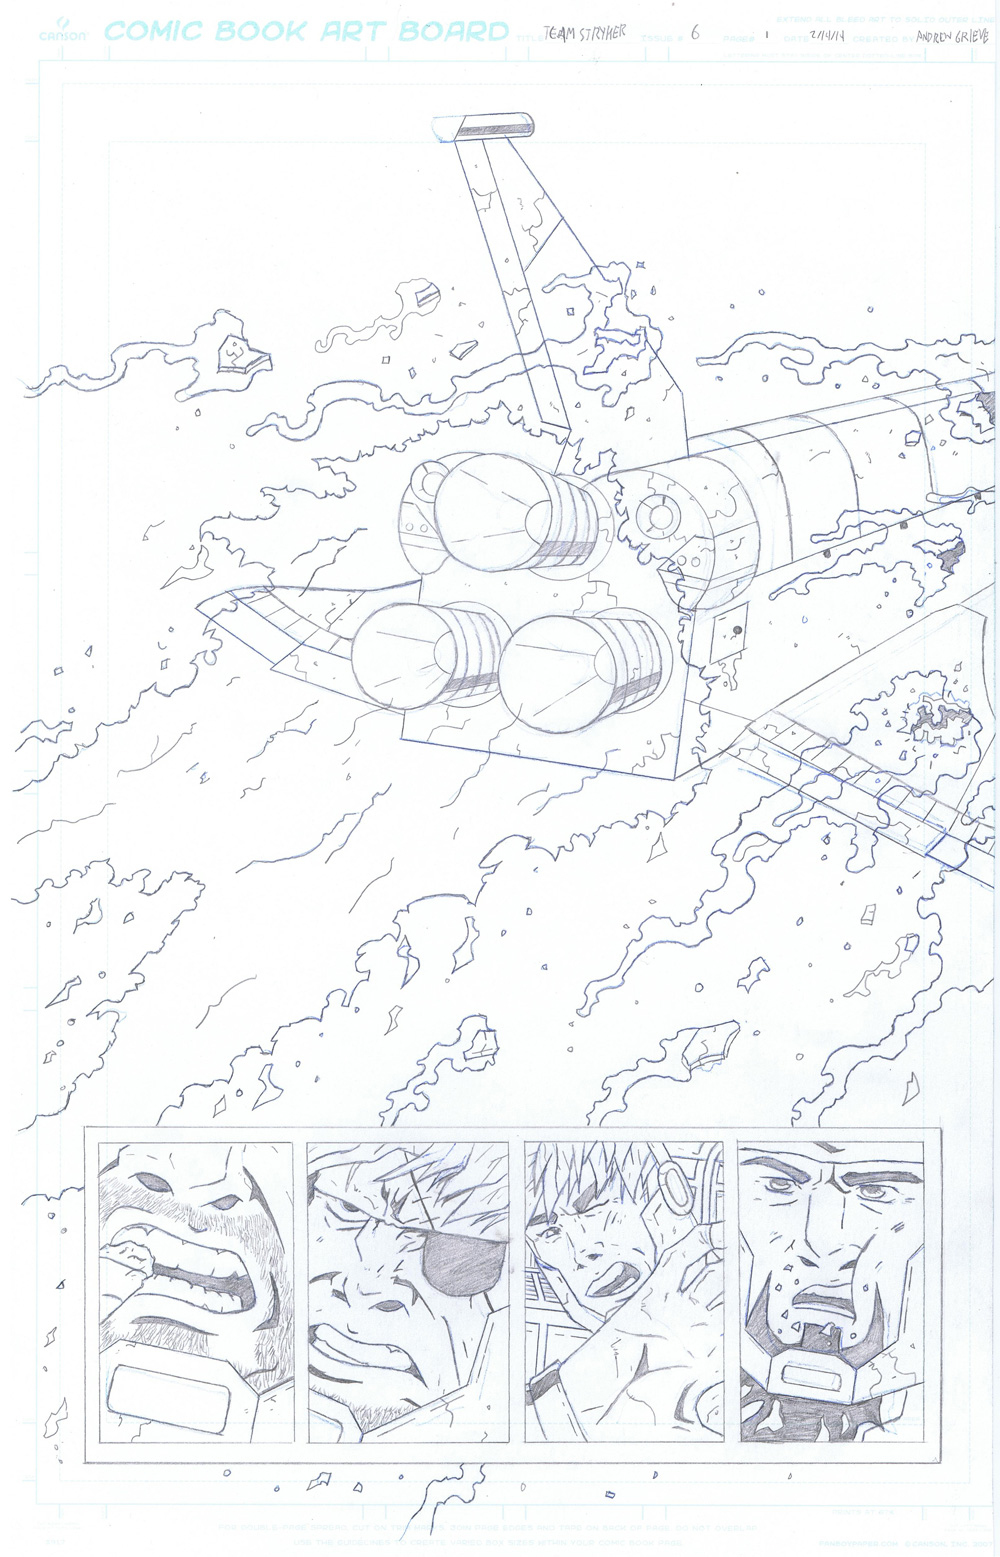 MISSION 006: PAGE 01 PENCIL